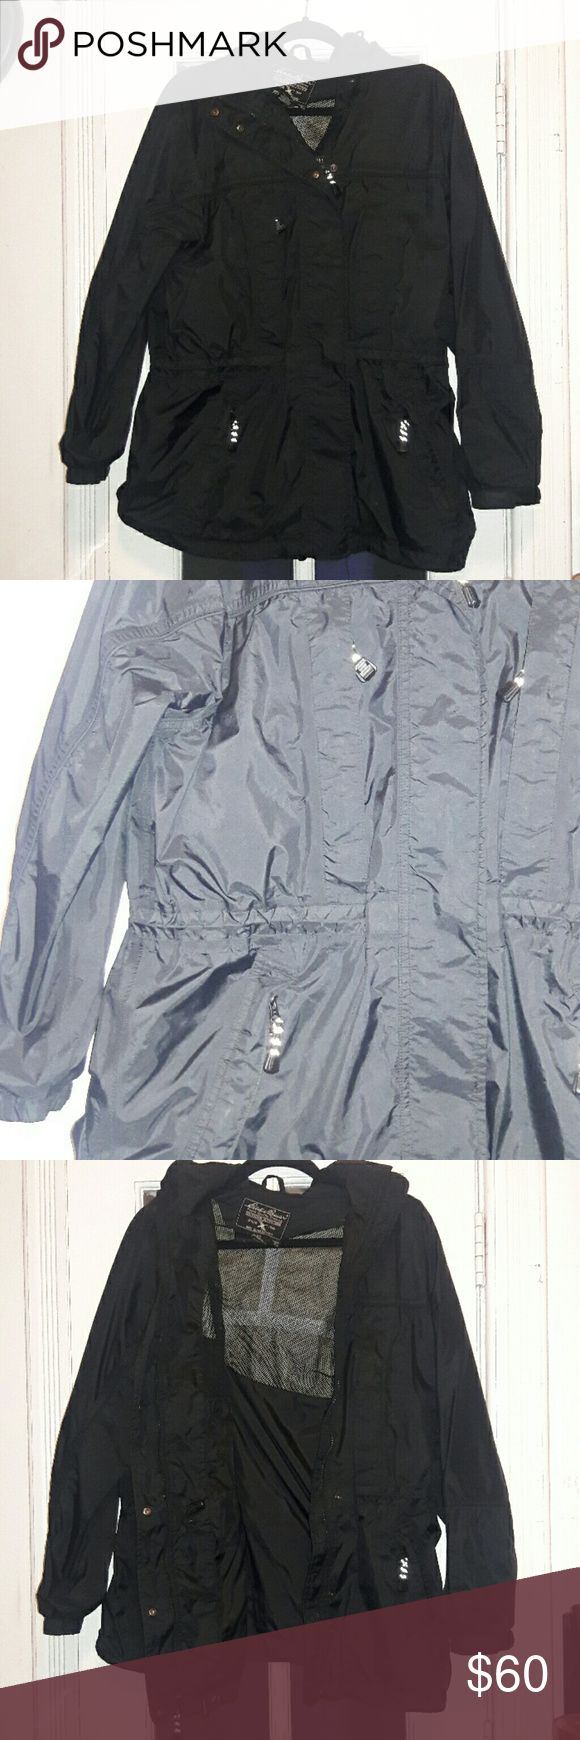 Eddie Bauer Rain Parka Womens Medium Mint condition worn once. Eddie Bauer brand black Rain Parka. There are 4 front zip pockets, the waist is adjustable, the hood is removable with a zipper, and the sleeves are adjustable. No rips holes or stains only reason I'm selling is it was gifted to me and it's too big.  Marked womens Medium it is a oversize fit, longer length (it covers my butt) comfy, has room for layering with another jacket. Eddie Bauer Jackets & Coats